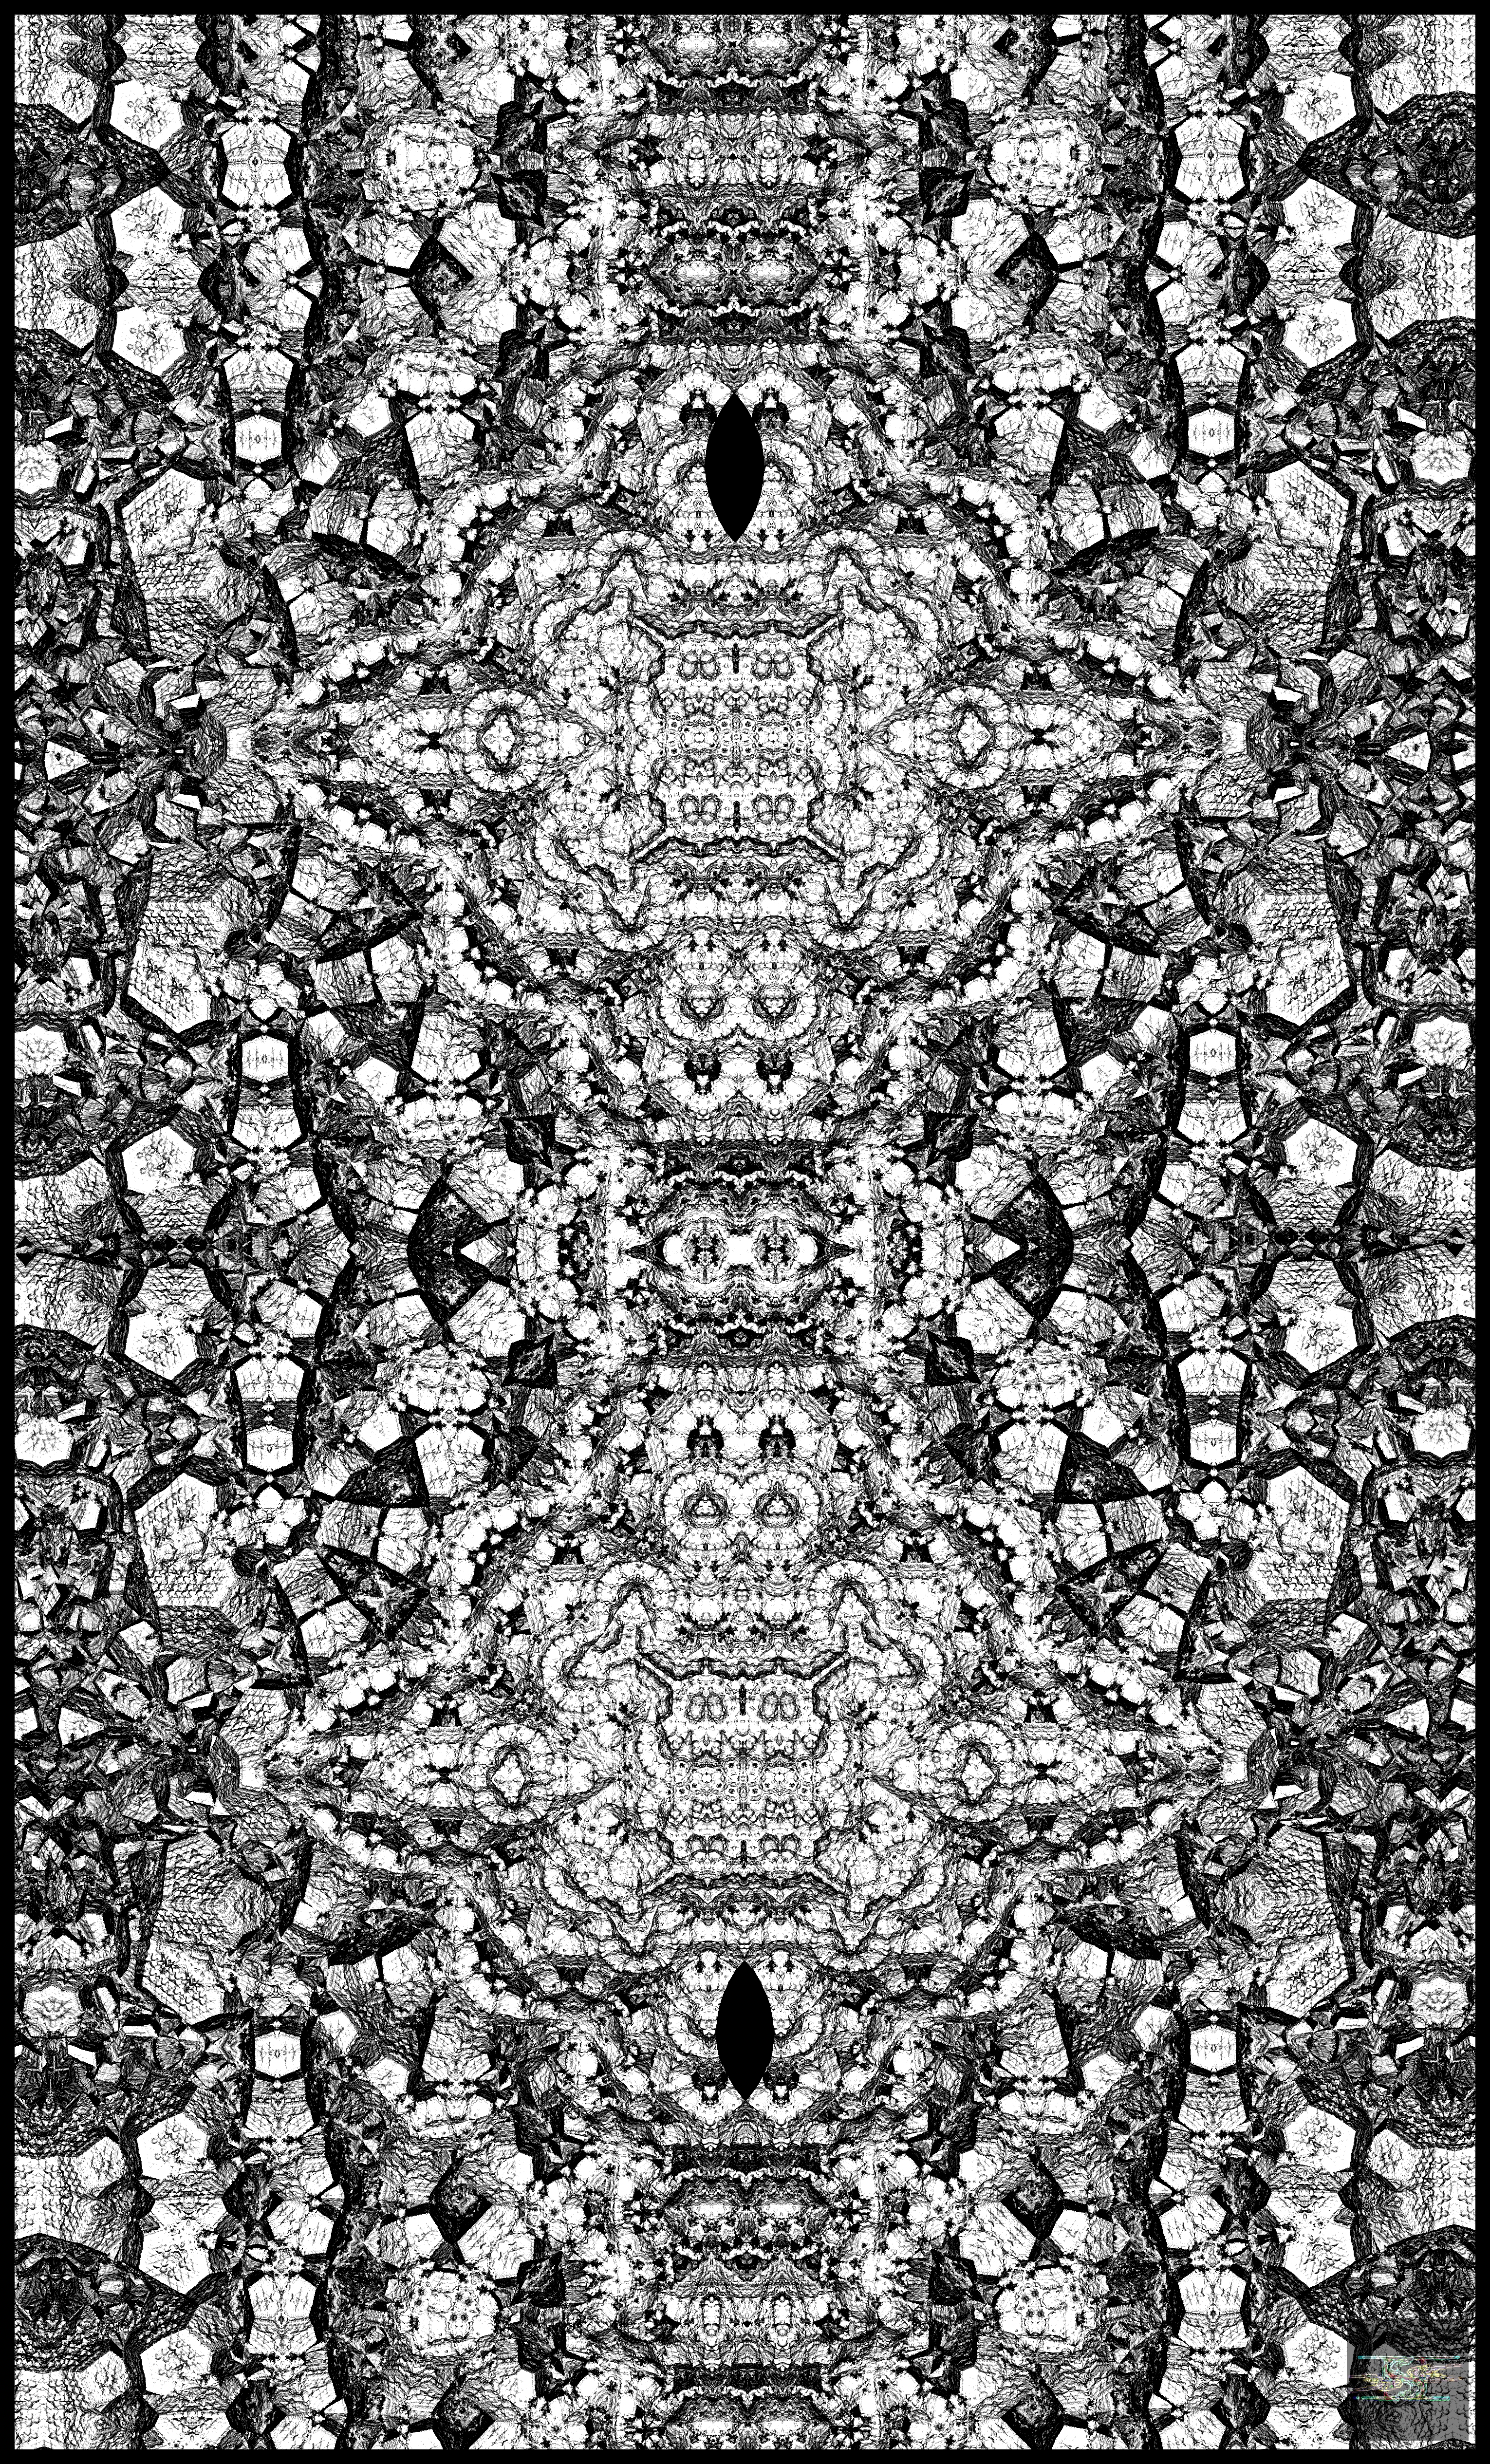 the giant fractal coloring challenge by spangler imagery on deviantart - Fractal Coloring Book